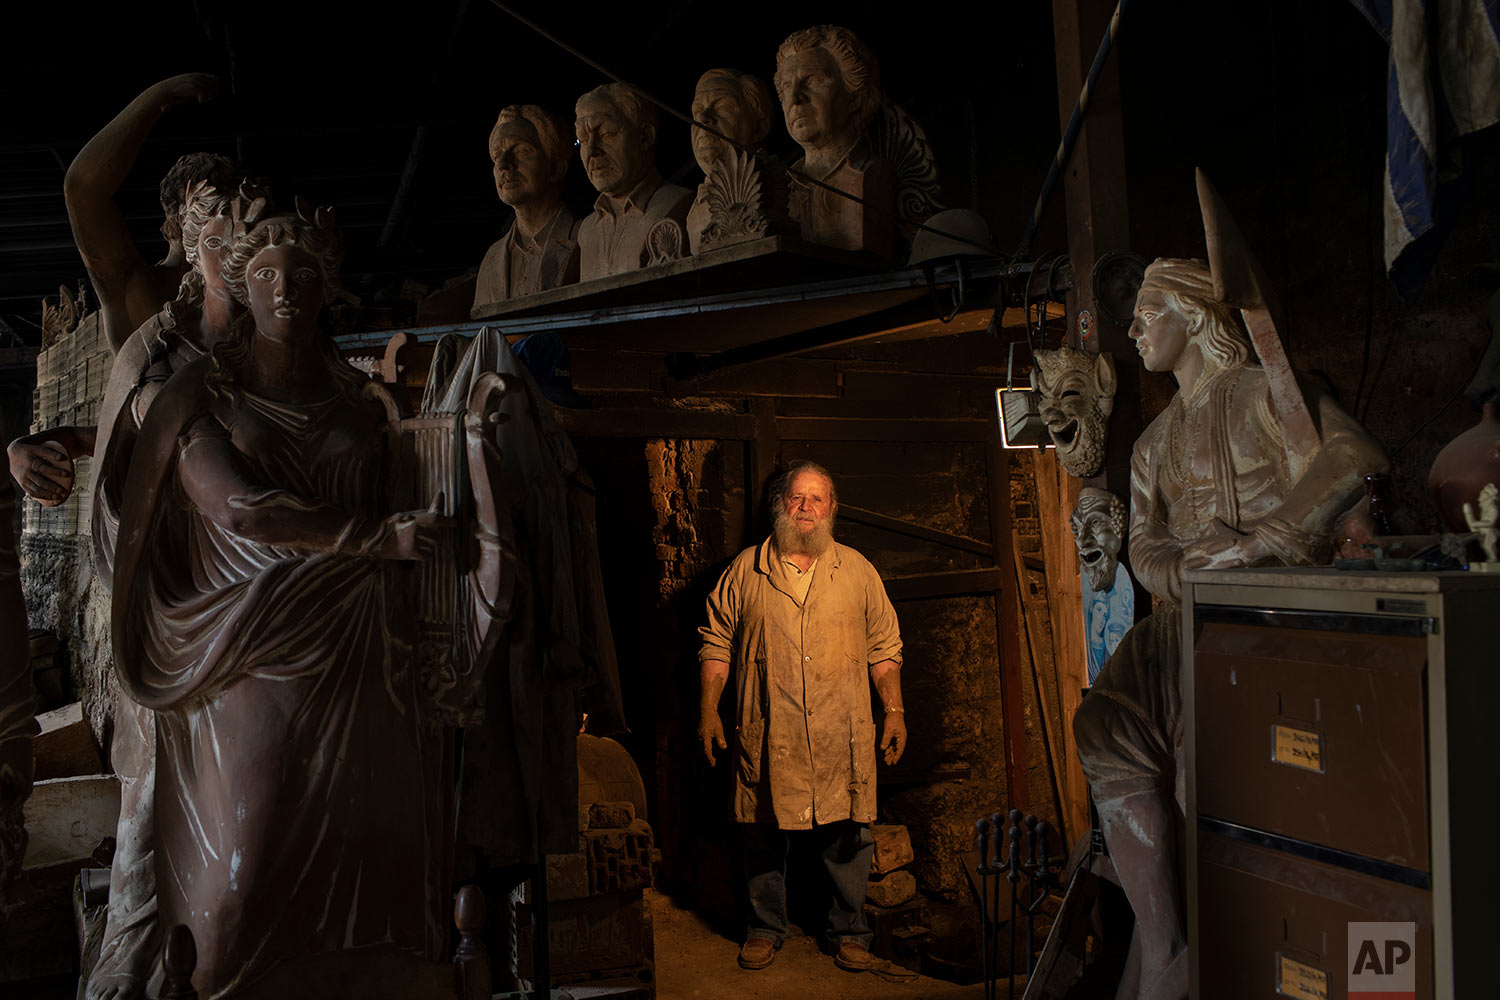 Haralambos Goumas, a 69-year-old sculptor and ceramicist poses for a photo inside his workshop in Athens. (AP Photo/Petros Giannakouris)